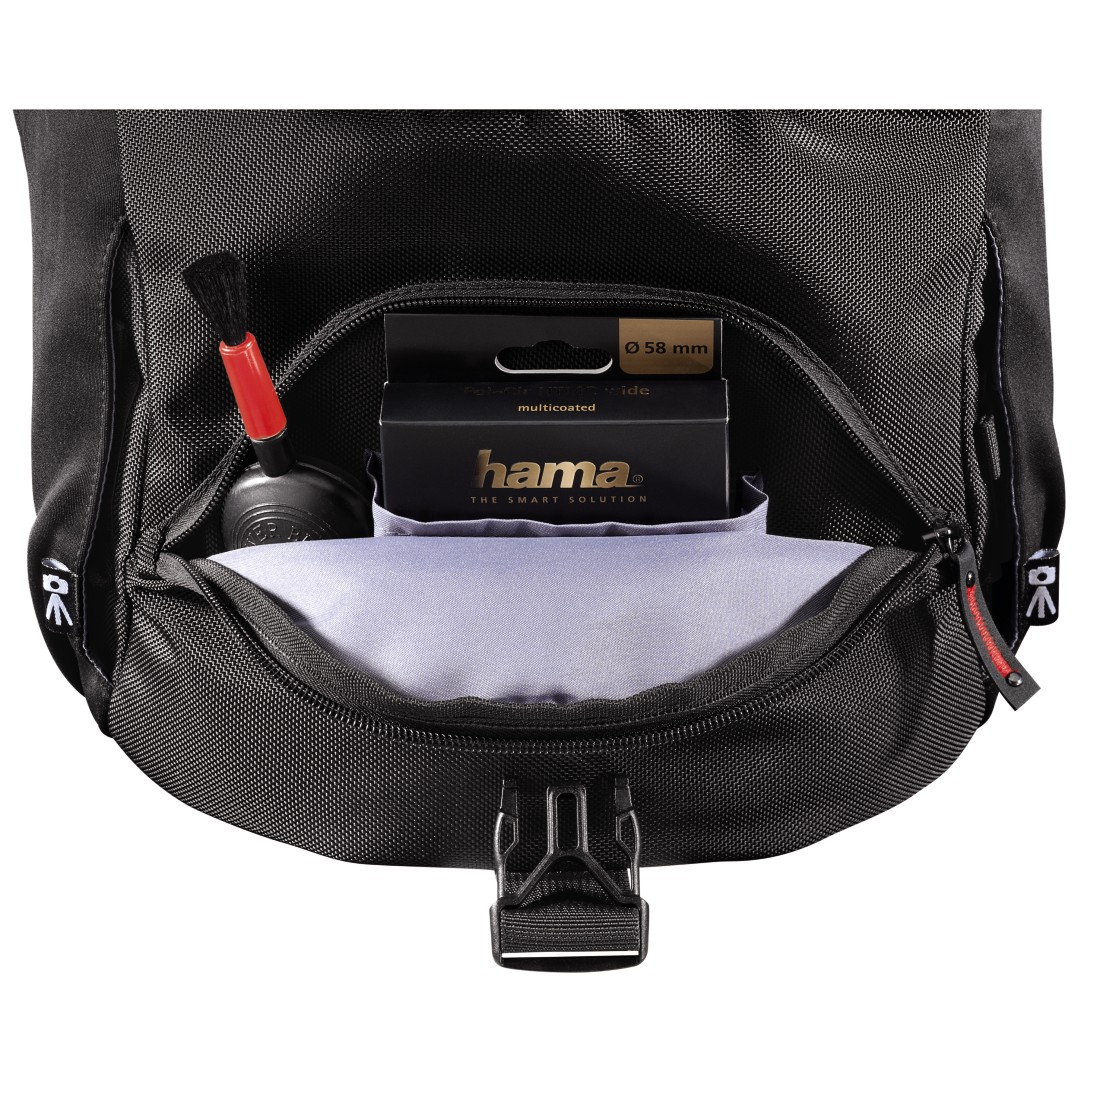 dex7 High-Res Detail 7 - Hama, Protour Camera Bag, 200, black